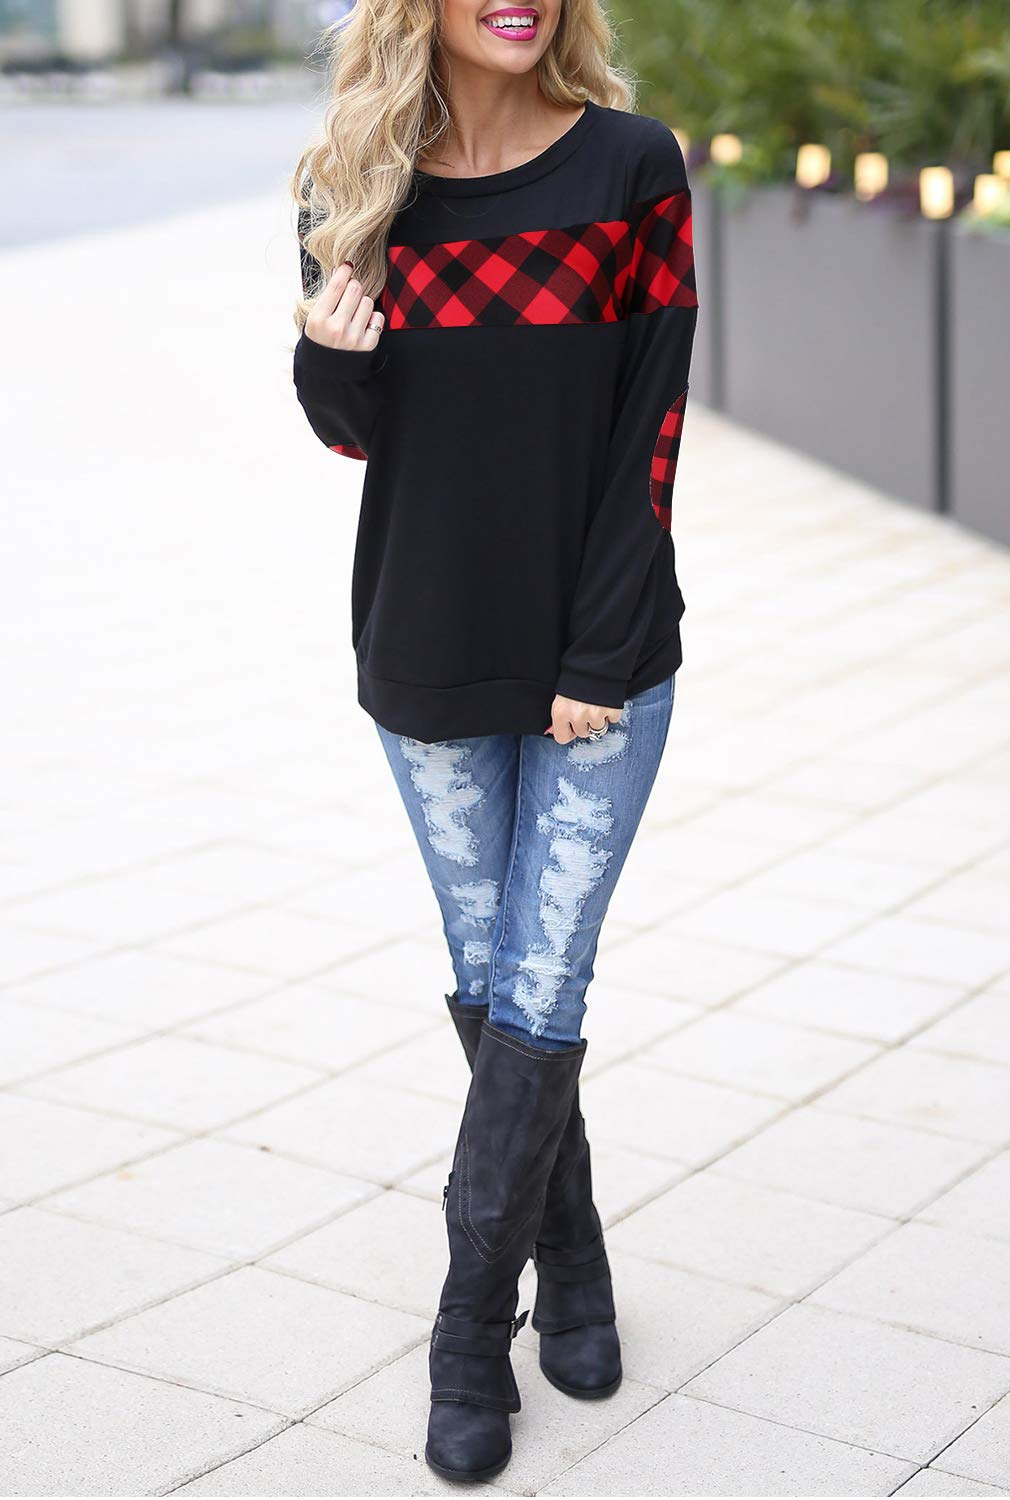 Blooming Jelly Women\'s Crewneck Sweatshirt Colorblock Plaid Shirt Elbow Patches Pullover Top(L) Black